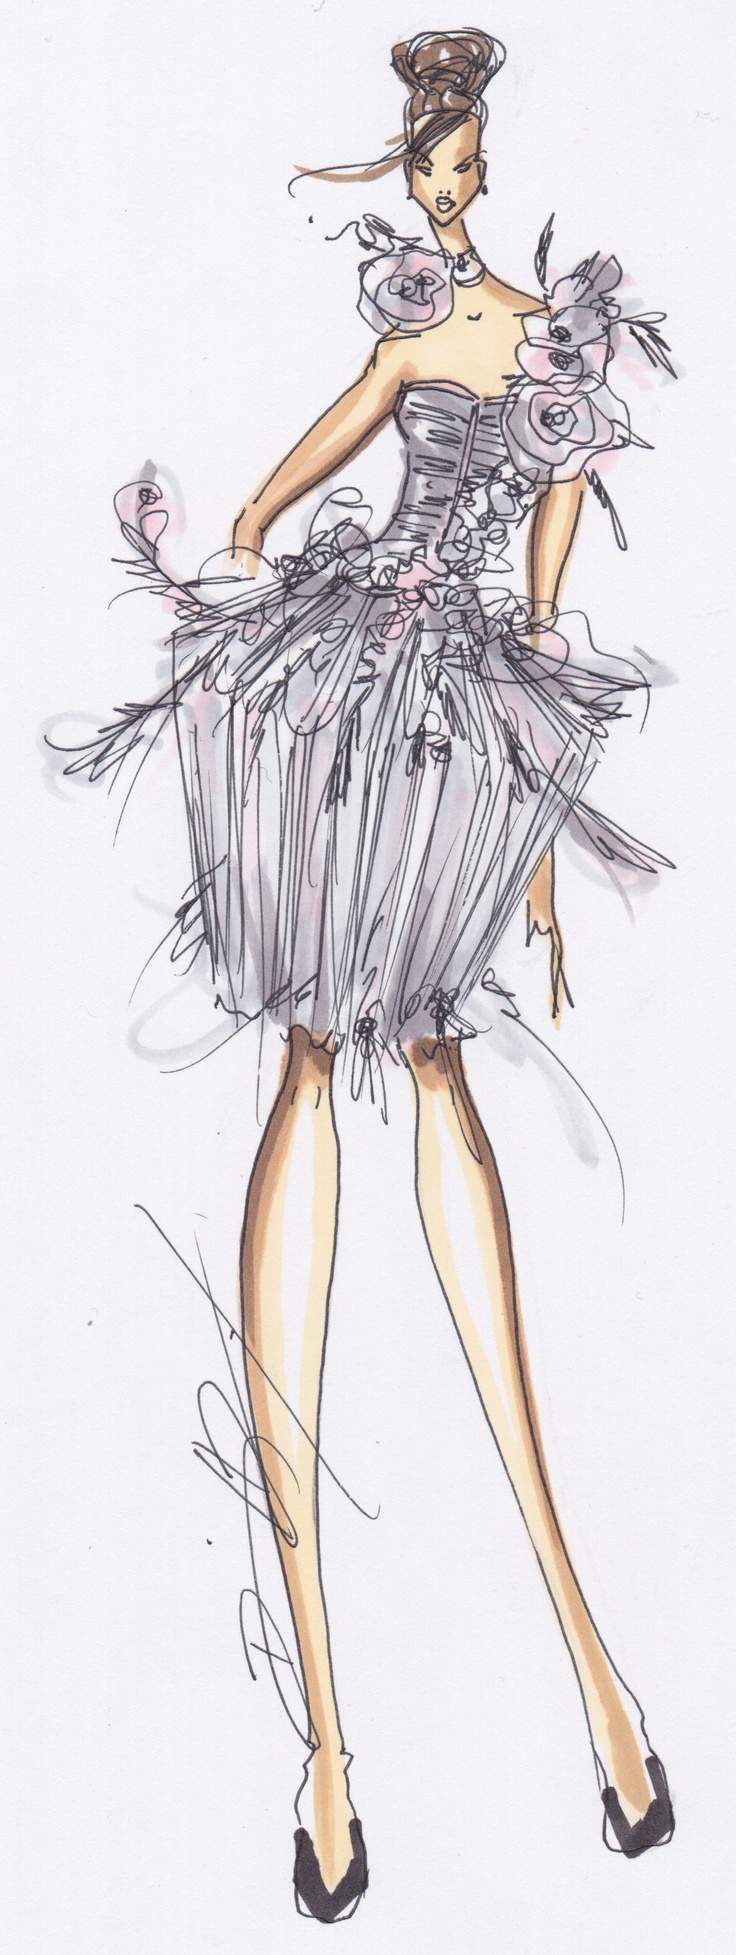 White-Cashmere-Collection-2013-David-Dixon-Sketch.jpg